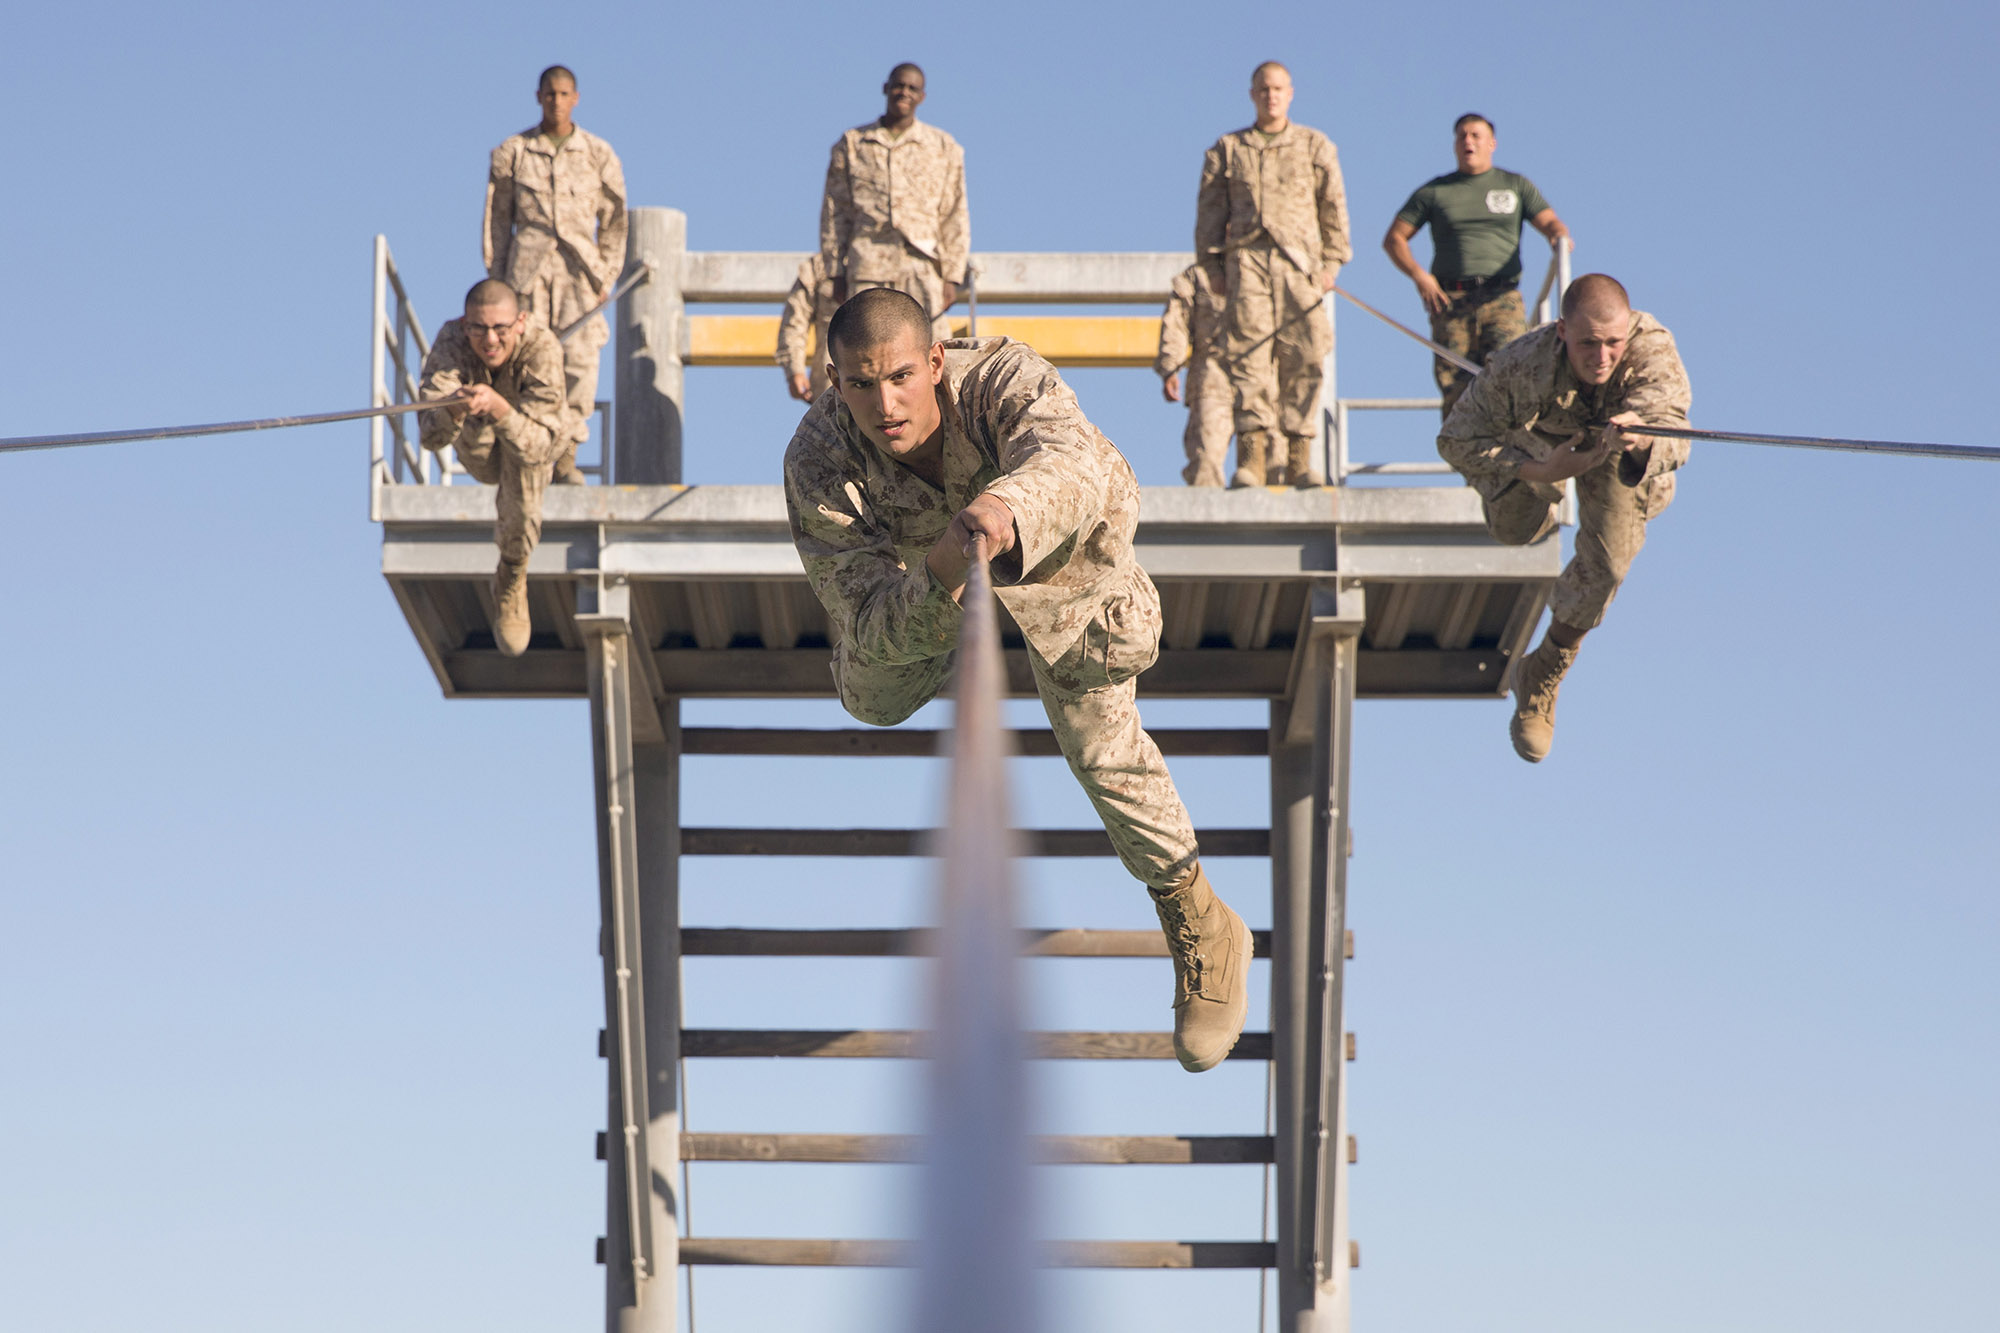 Rct. Eliseo Z. Sandoval overcomes an obstacle during the Confidence Course at Marine Corps Recruit Depot, San Diego, Dec. 2, 2020. (Sgt. Brooke C. Woods/Marine Corps)